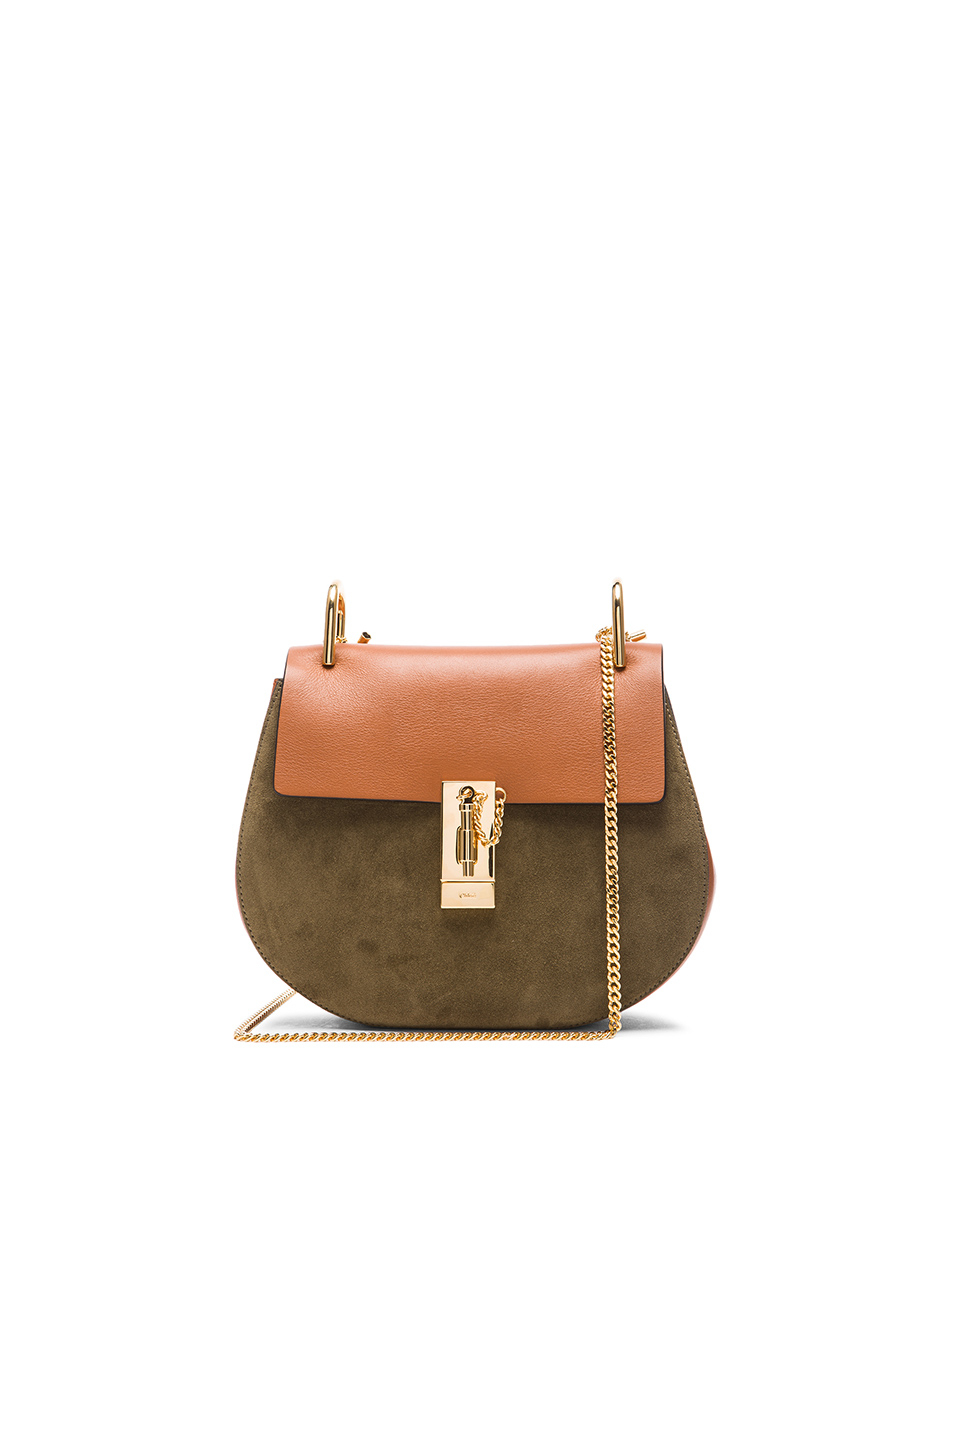 0b7a46cd122 Chloé Small Drew Suede & Leather Bag in Brown - Lyst